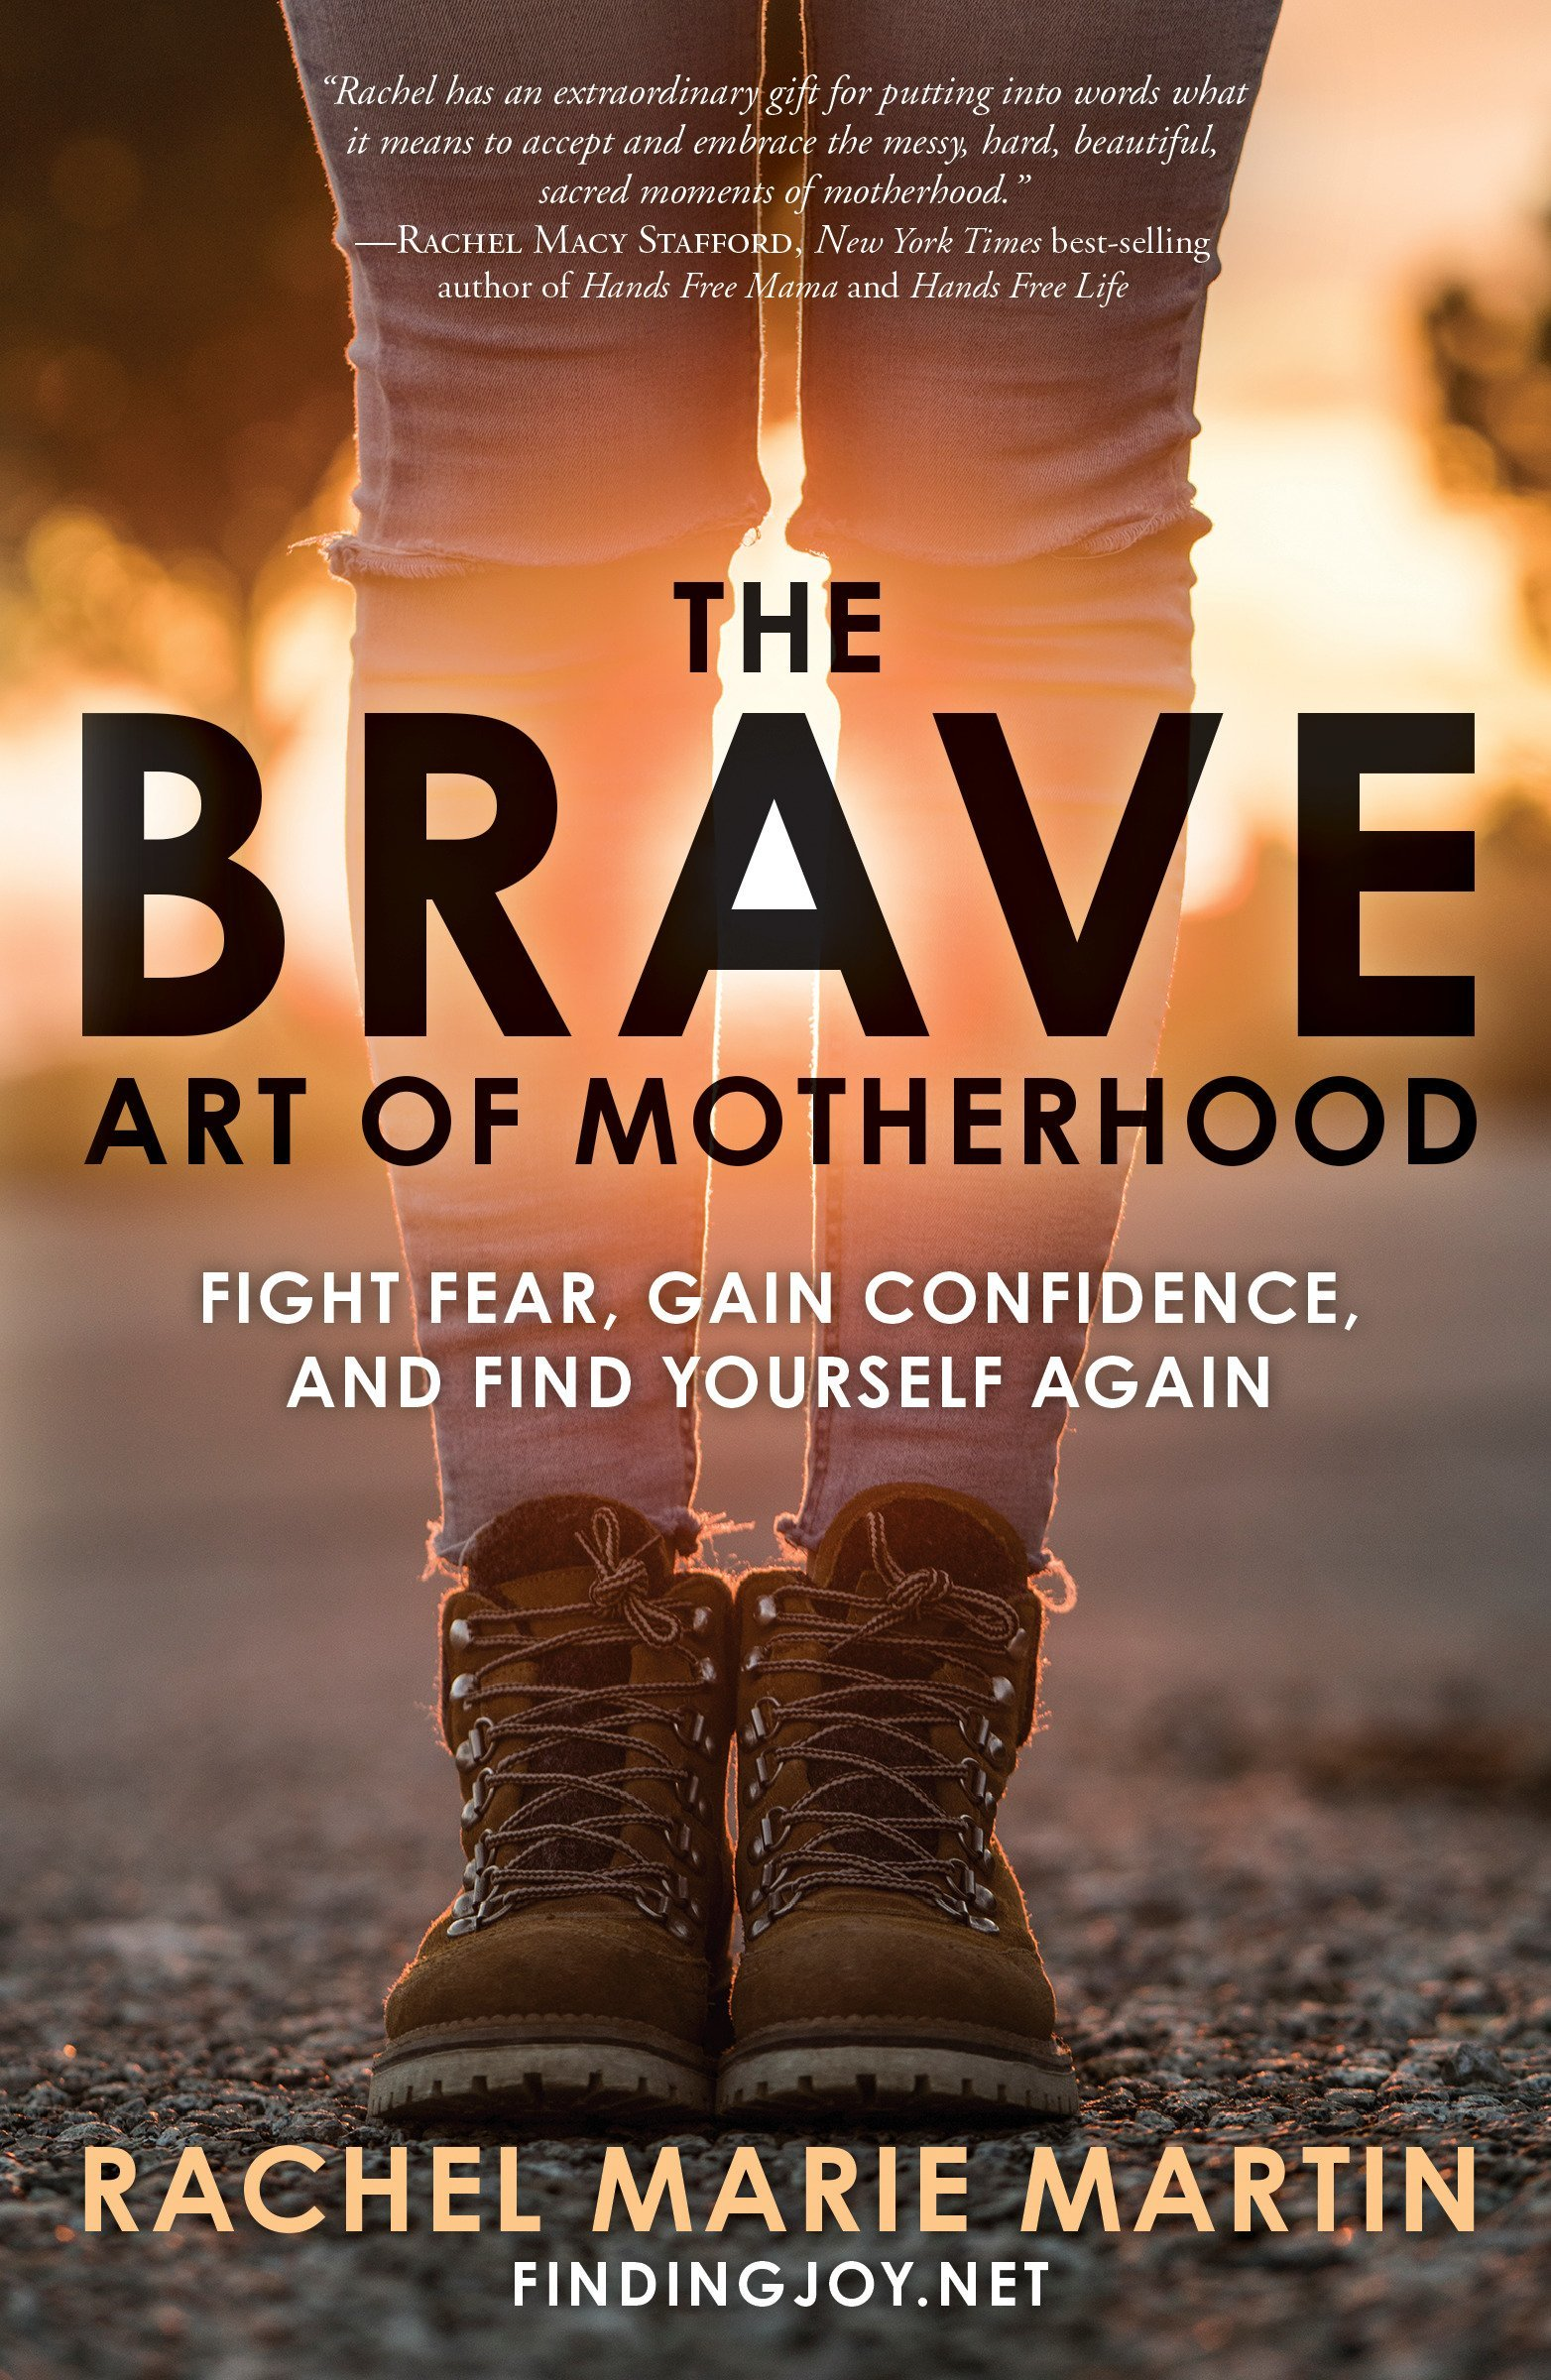 The Brave Art of Motherhood: Fight Fear, Gain Confidence, and Find Yourself Again